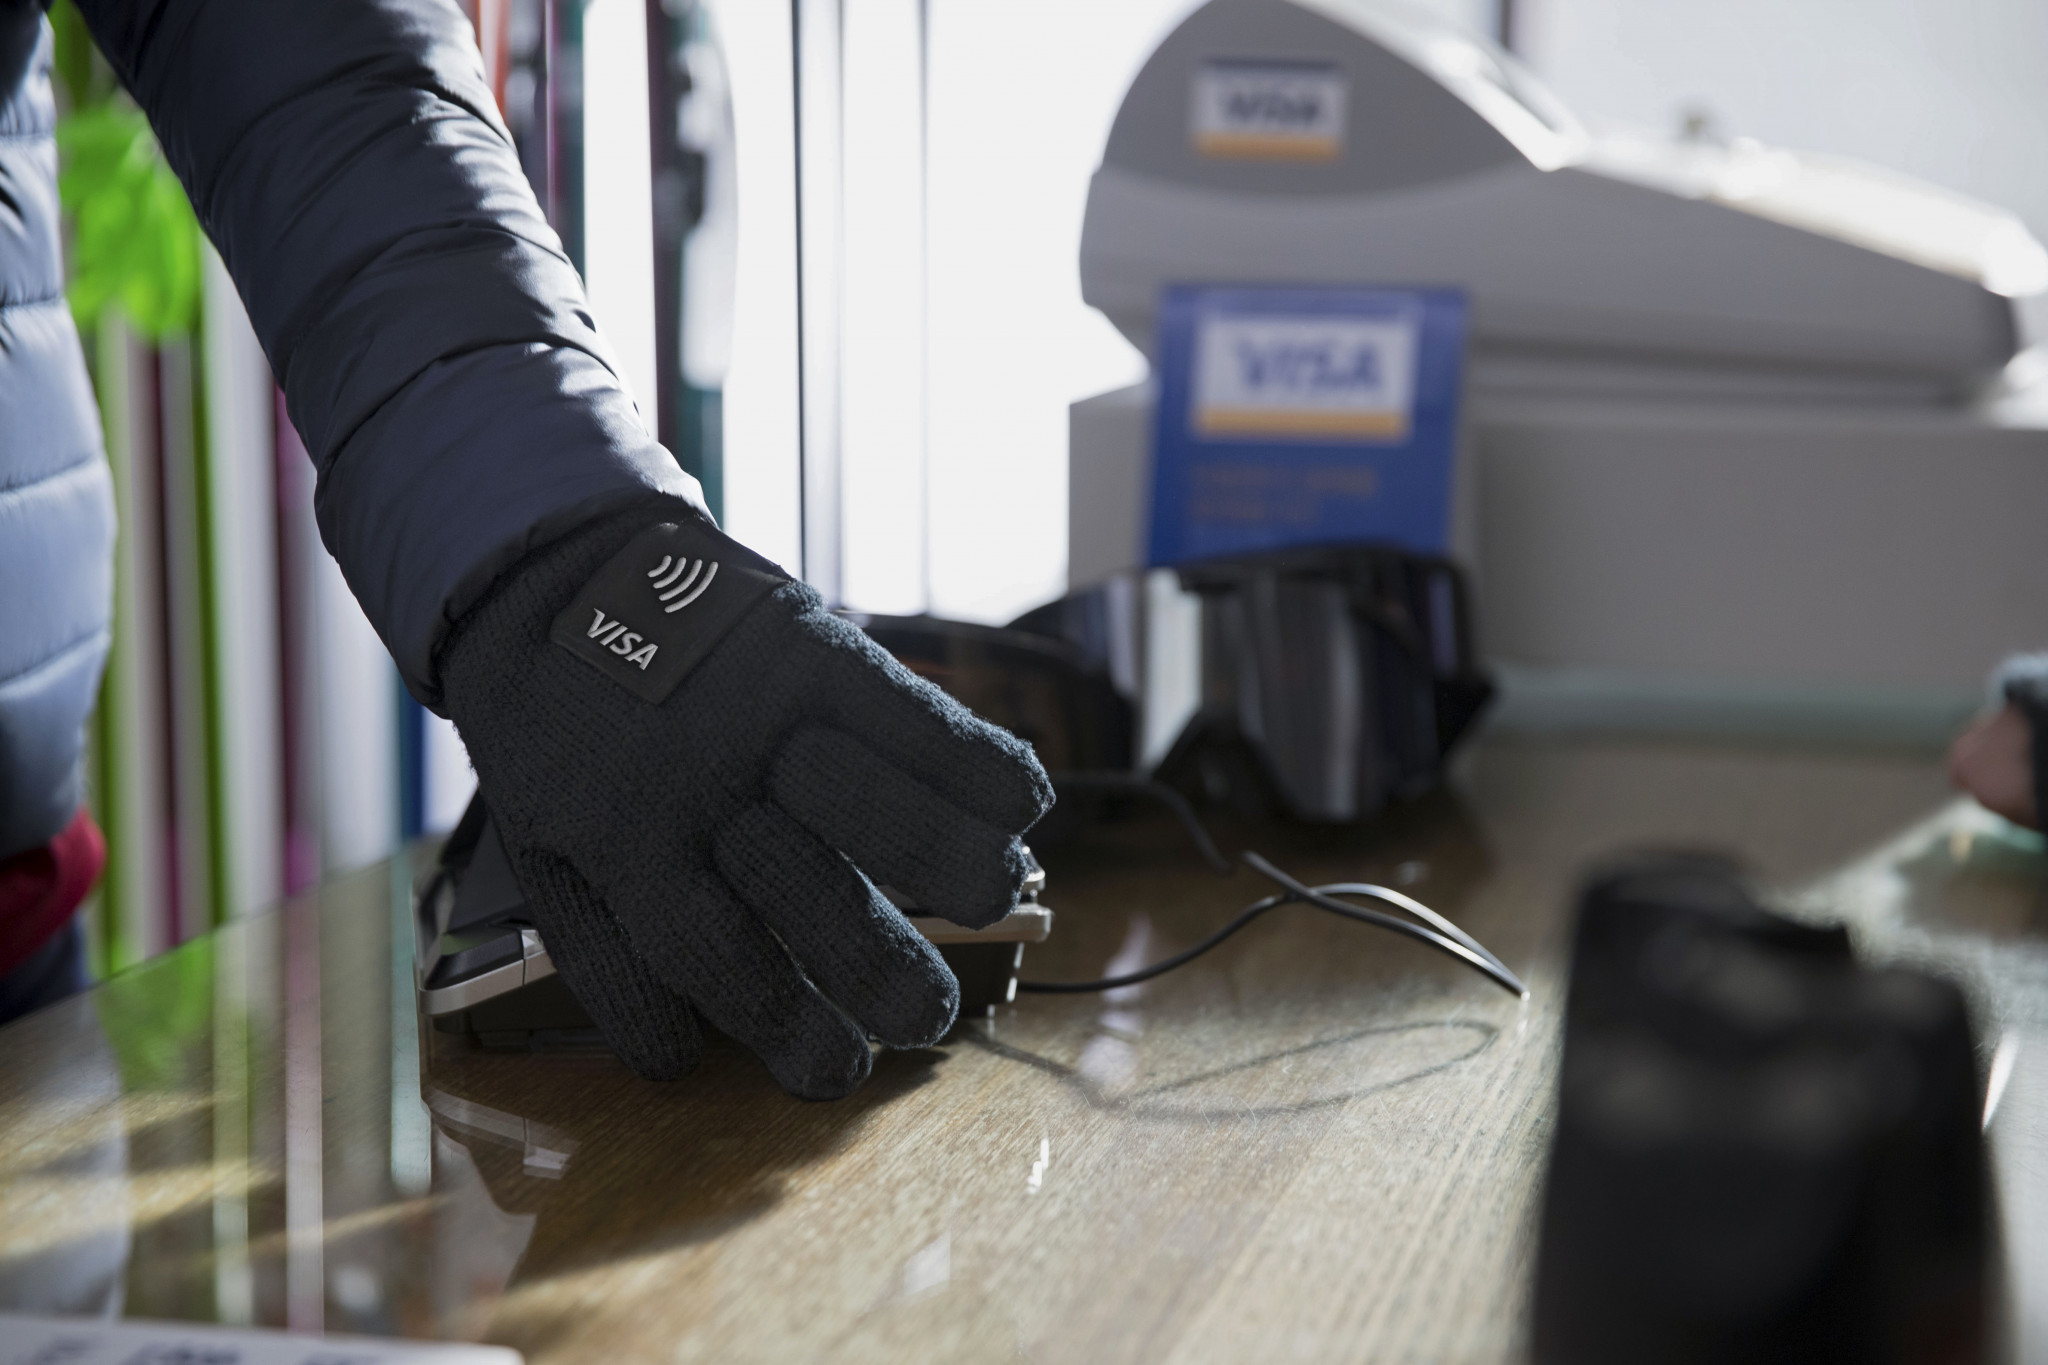 Visa introduces new payment mittens for Pyeongchang 2018 spectators